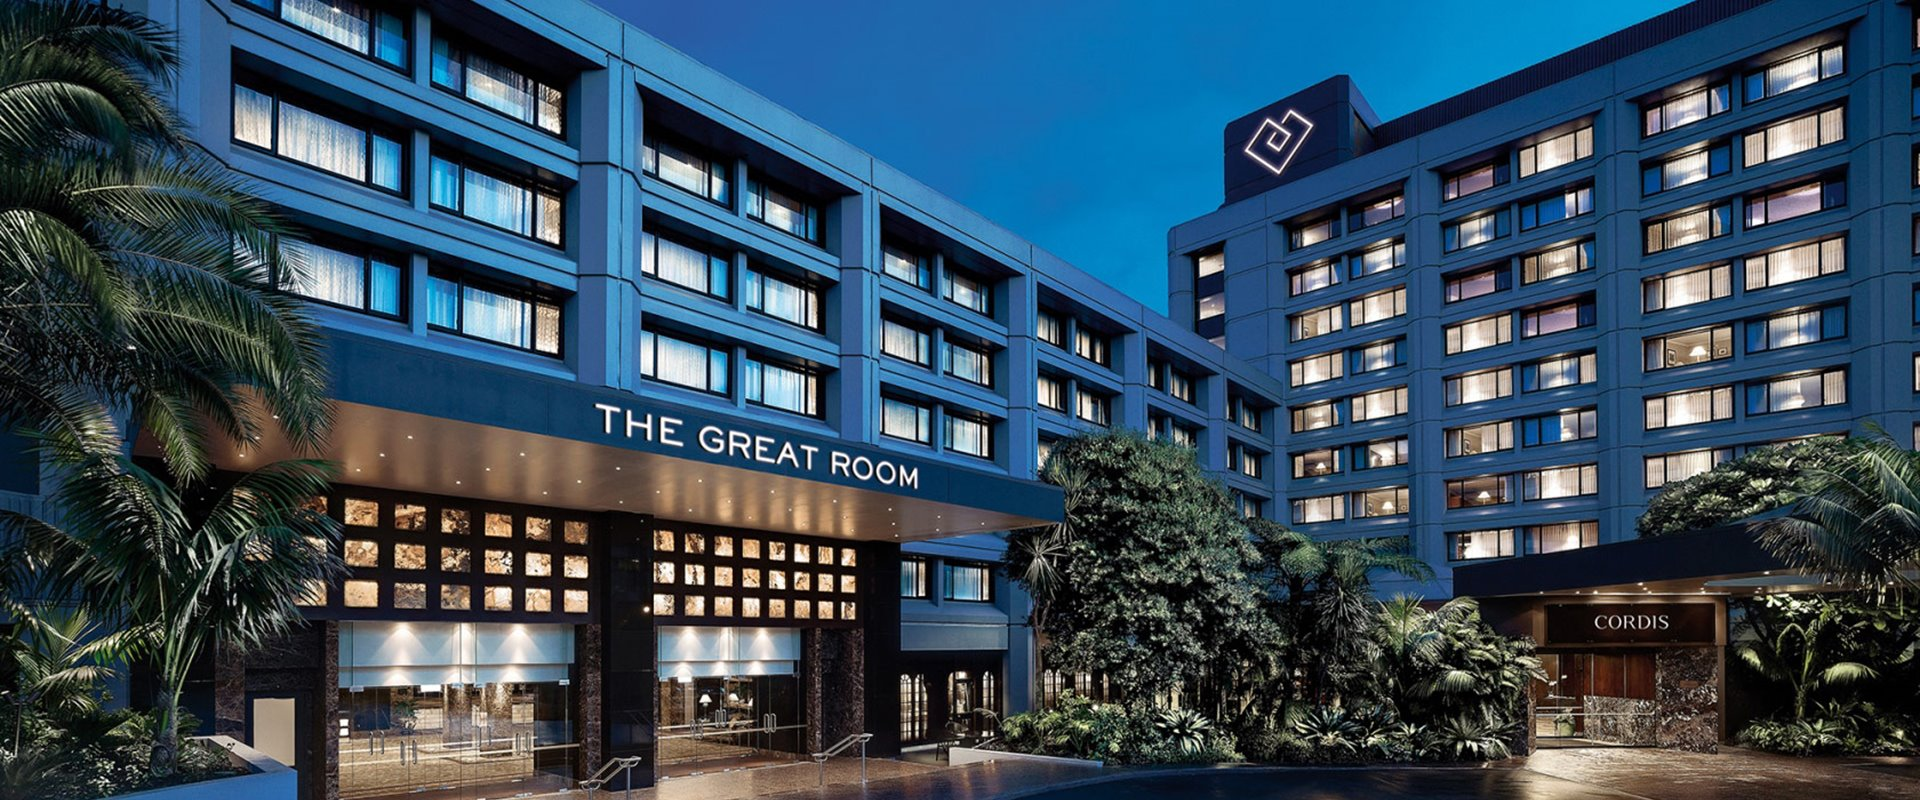 Auckland - Cordis | Conference Venues New Zealand